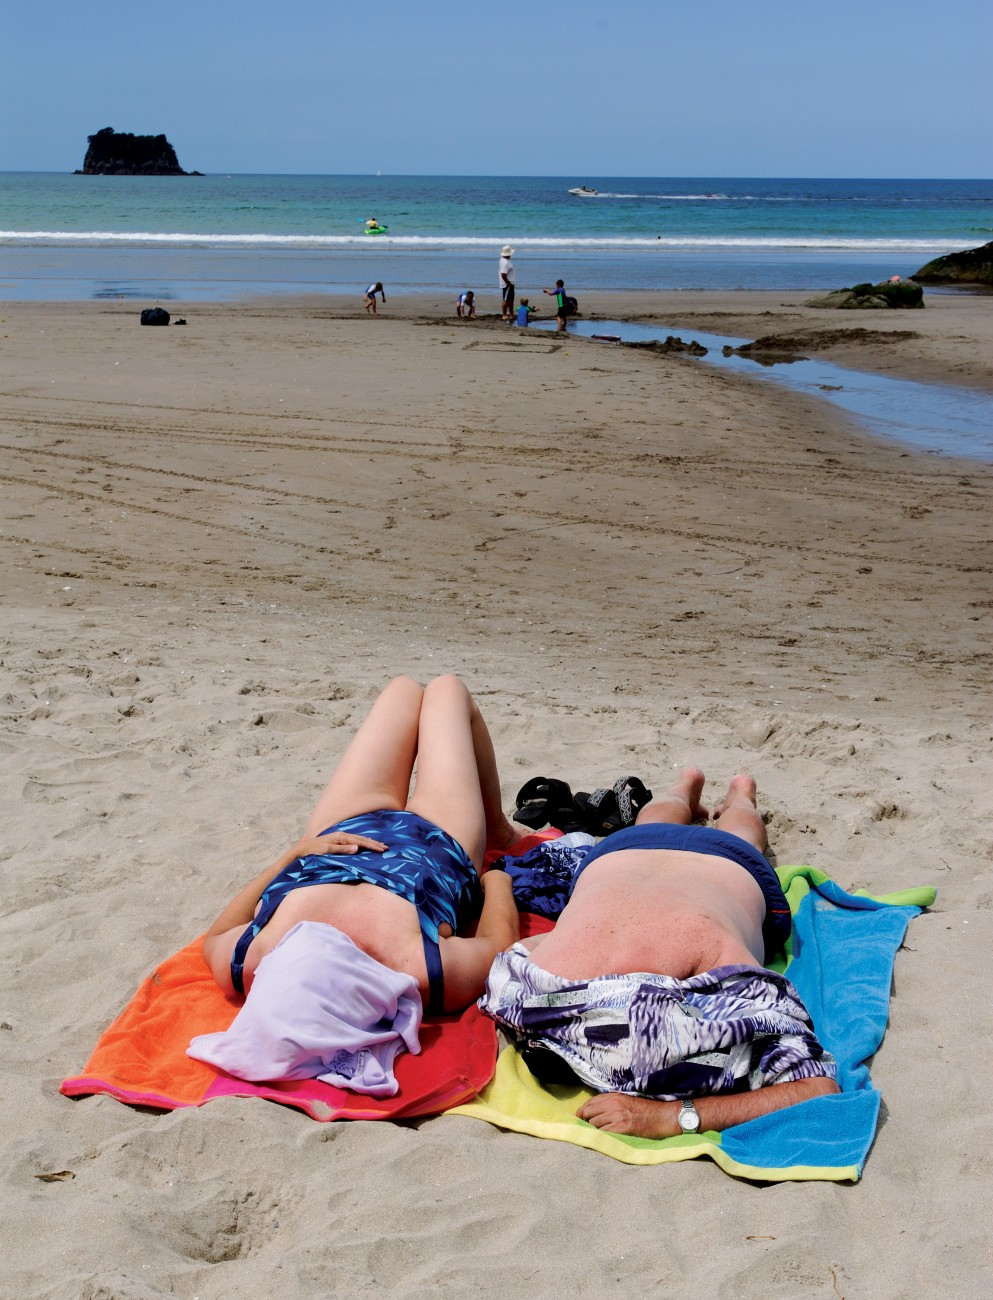 A Sunday afternoon siesta on an uncrowded beach suffices for some, while children play in tidal pools near the Otahu Estuary.